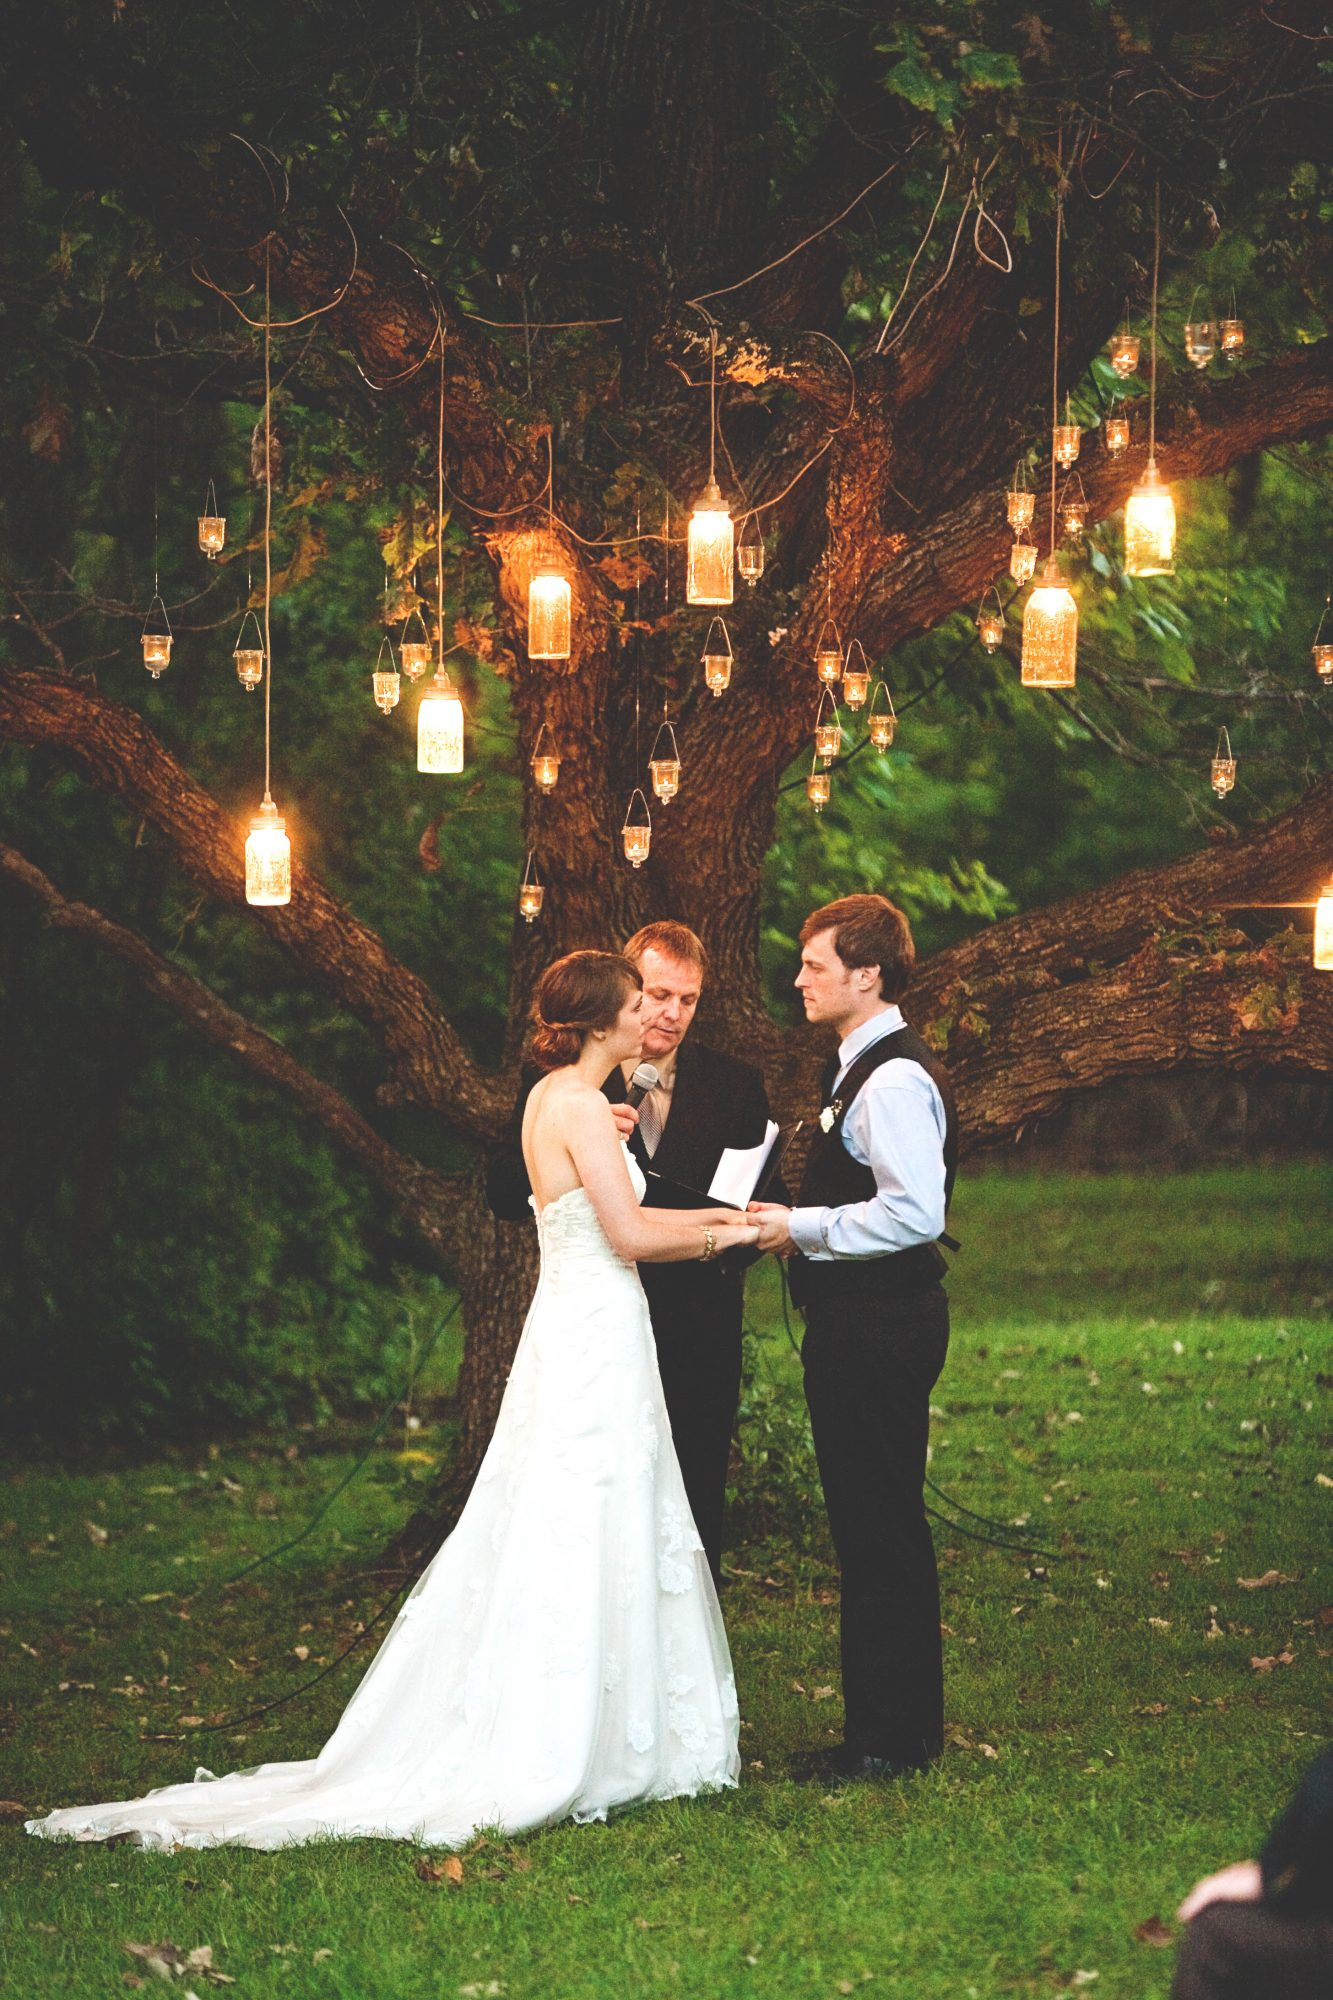 These mason jar lights hanging from a tree are one of our favoritie wedding mason jar ideas